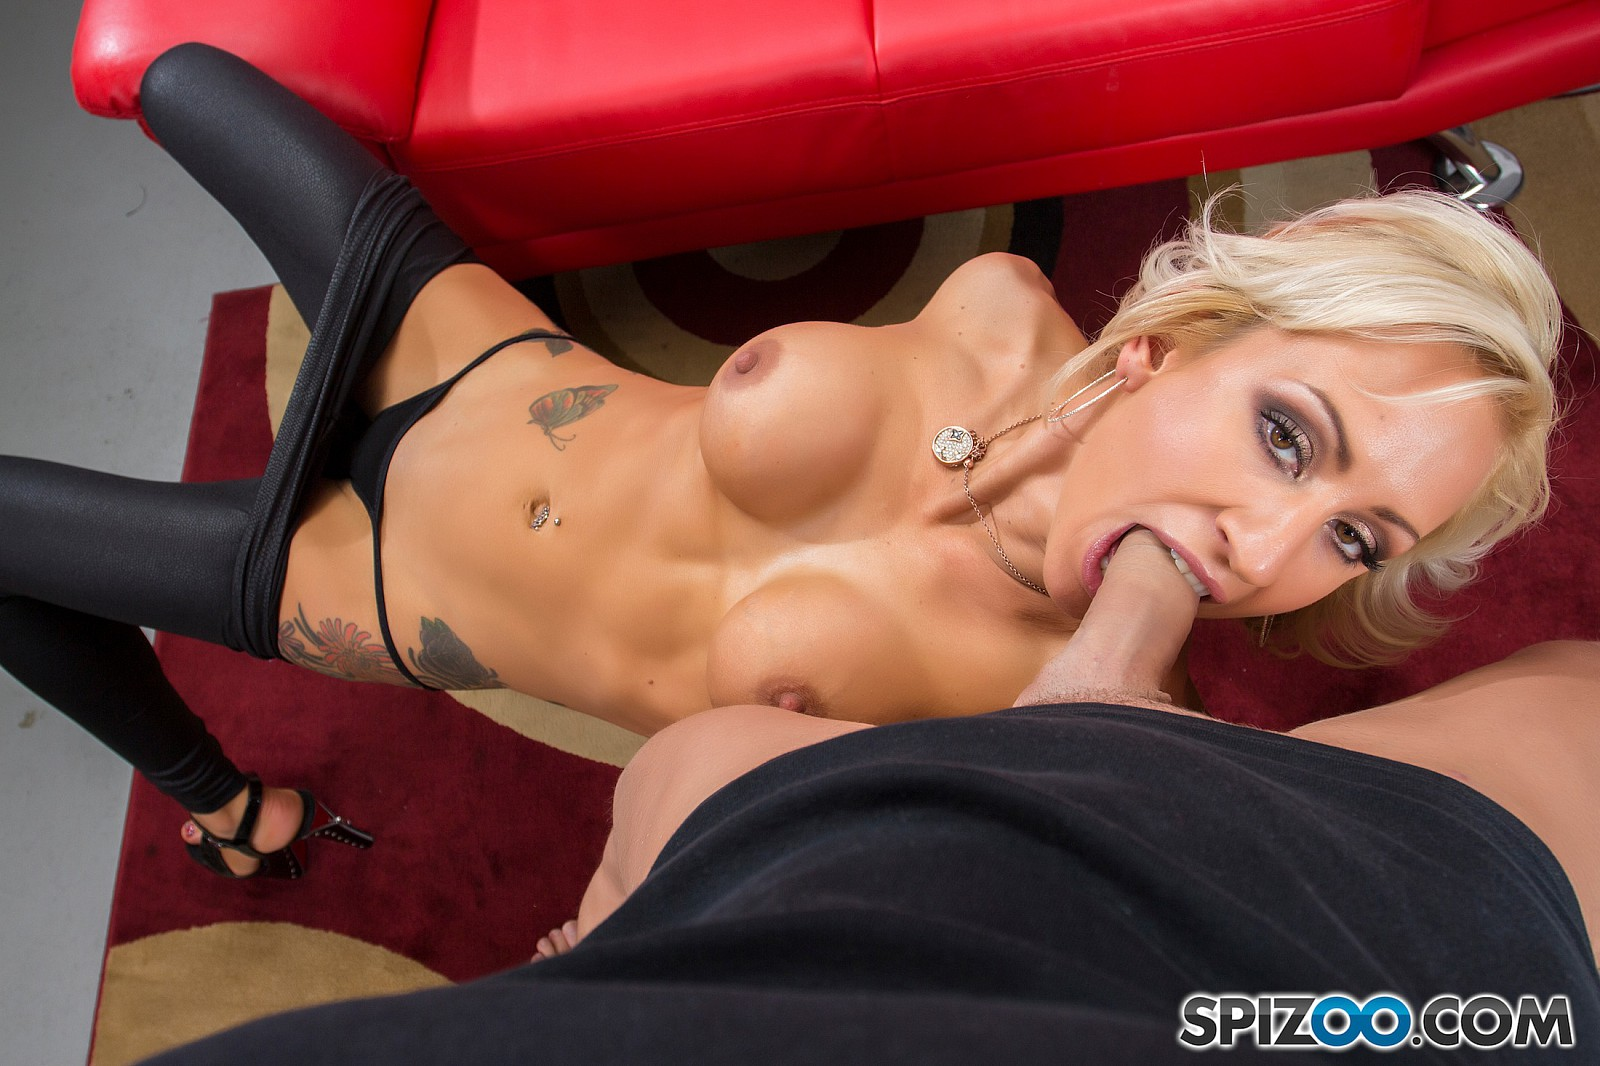 She hires a man to shoot taken doggy style 3